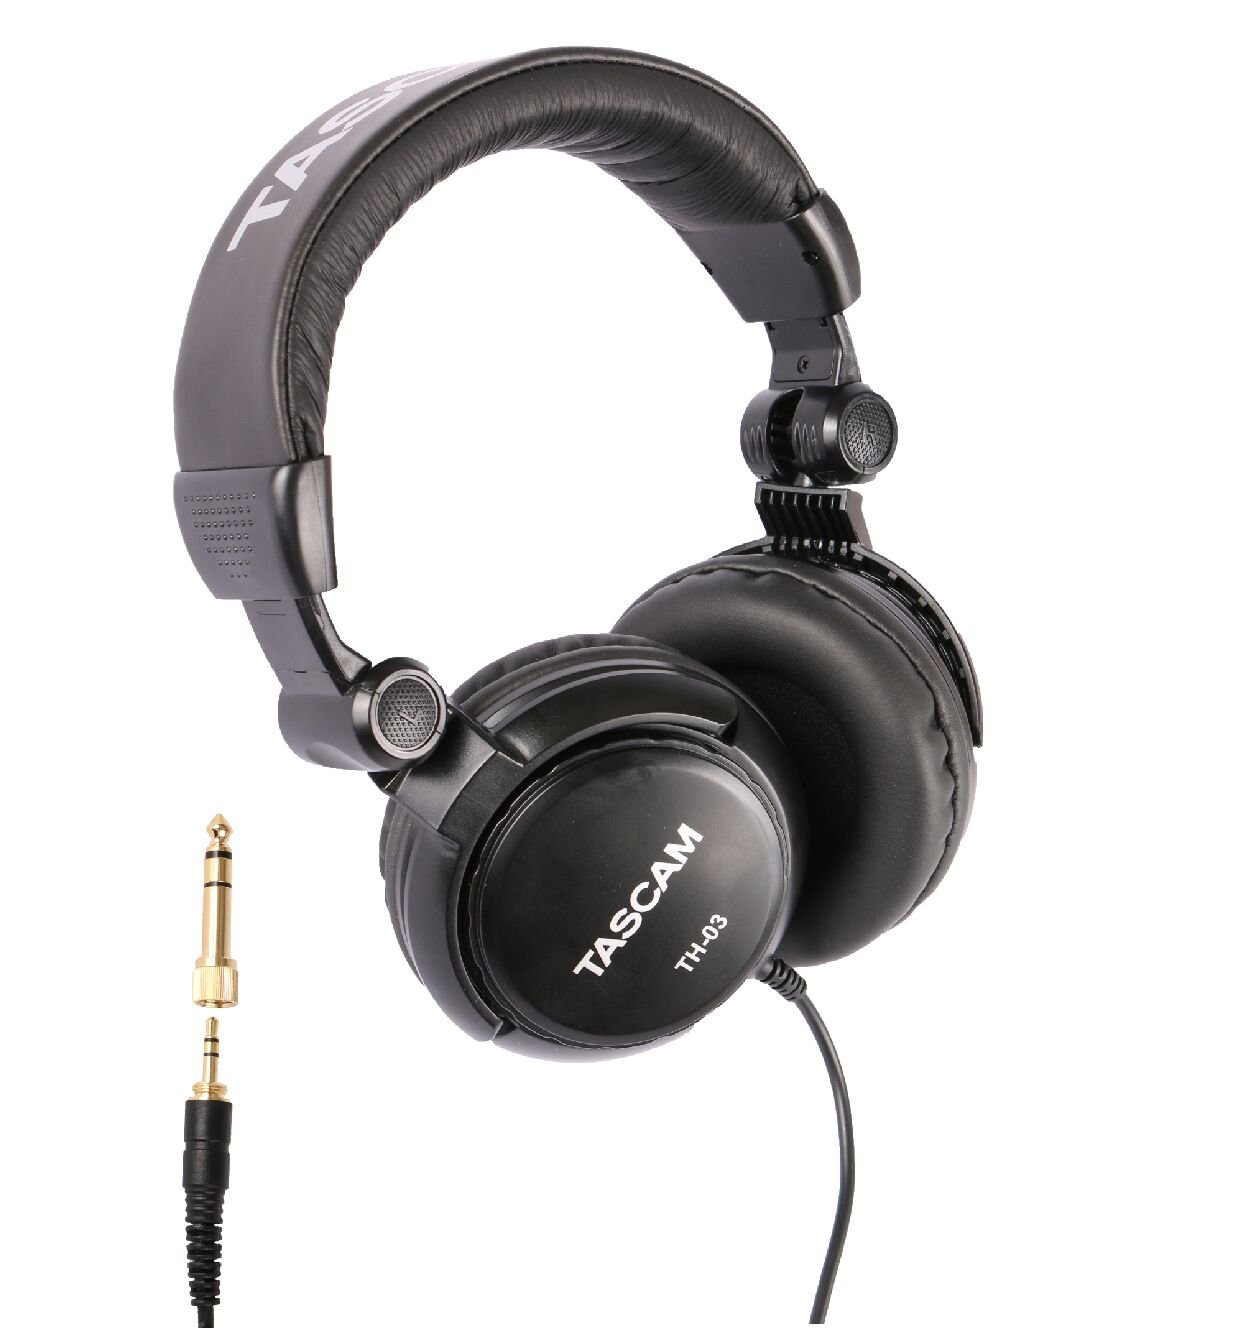 Tascam TH-03 Studio Headphones – Closed Back, Padded, Adjustable Pro Audio Headset with Gold Tip 1/8 inch to 1/4 inch Adaptor by Focus Camera